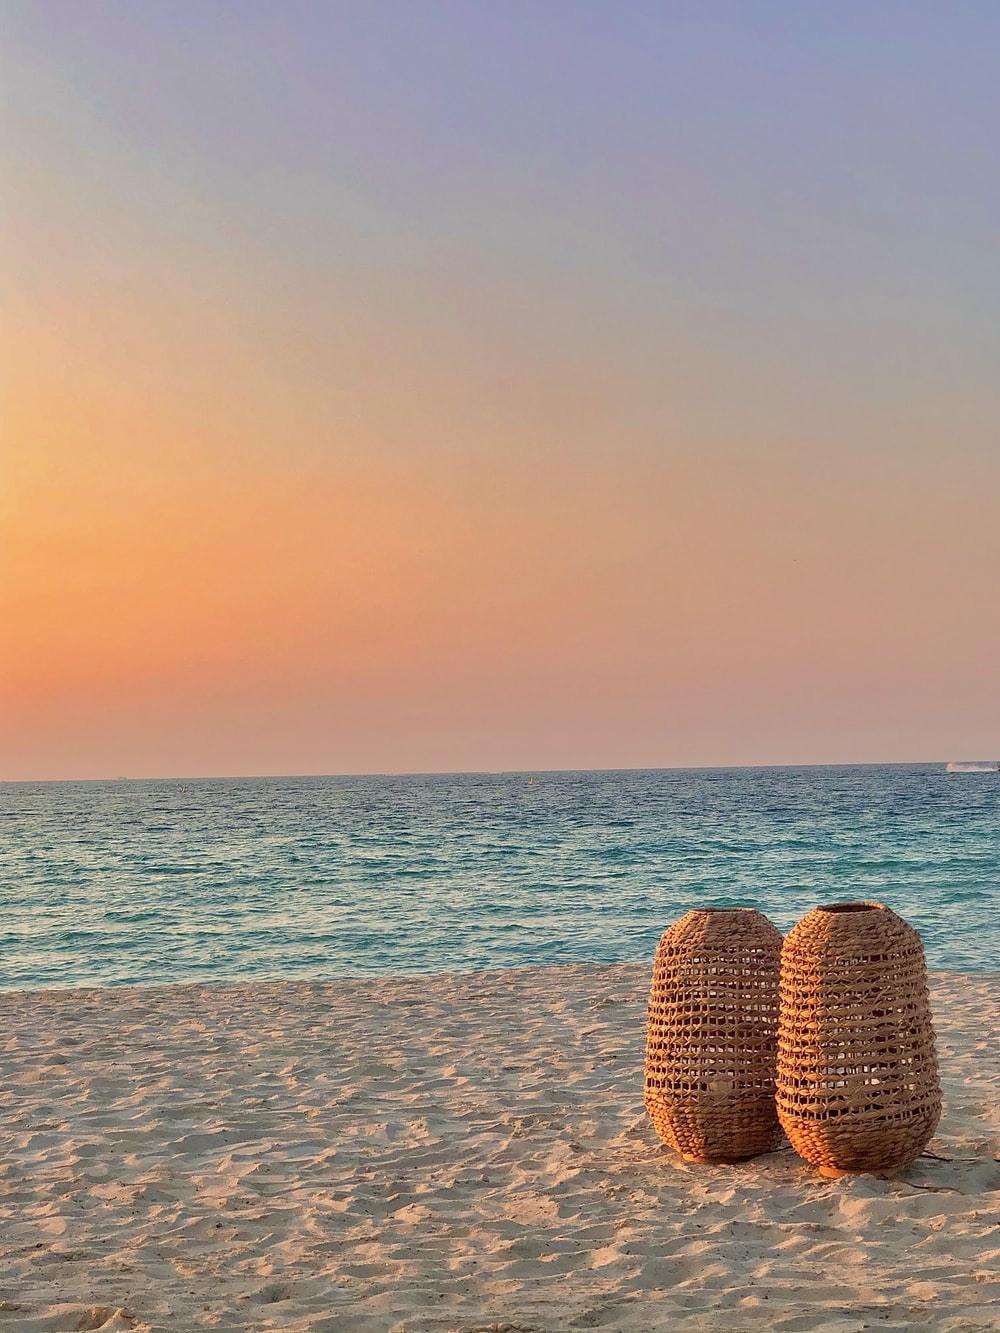 brown wicker basket on beach during sunset